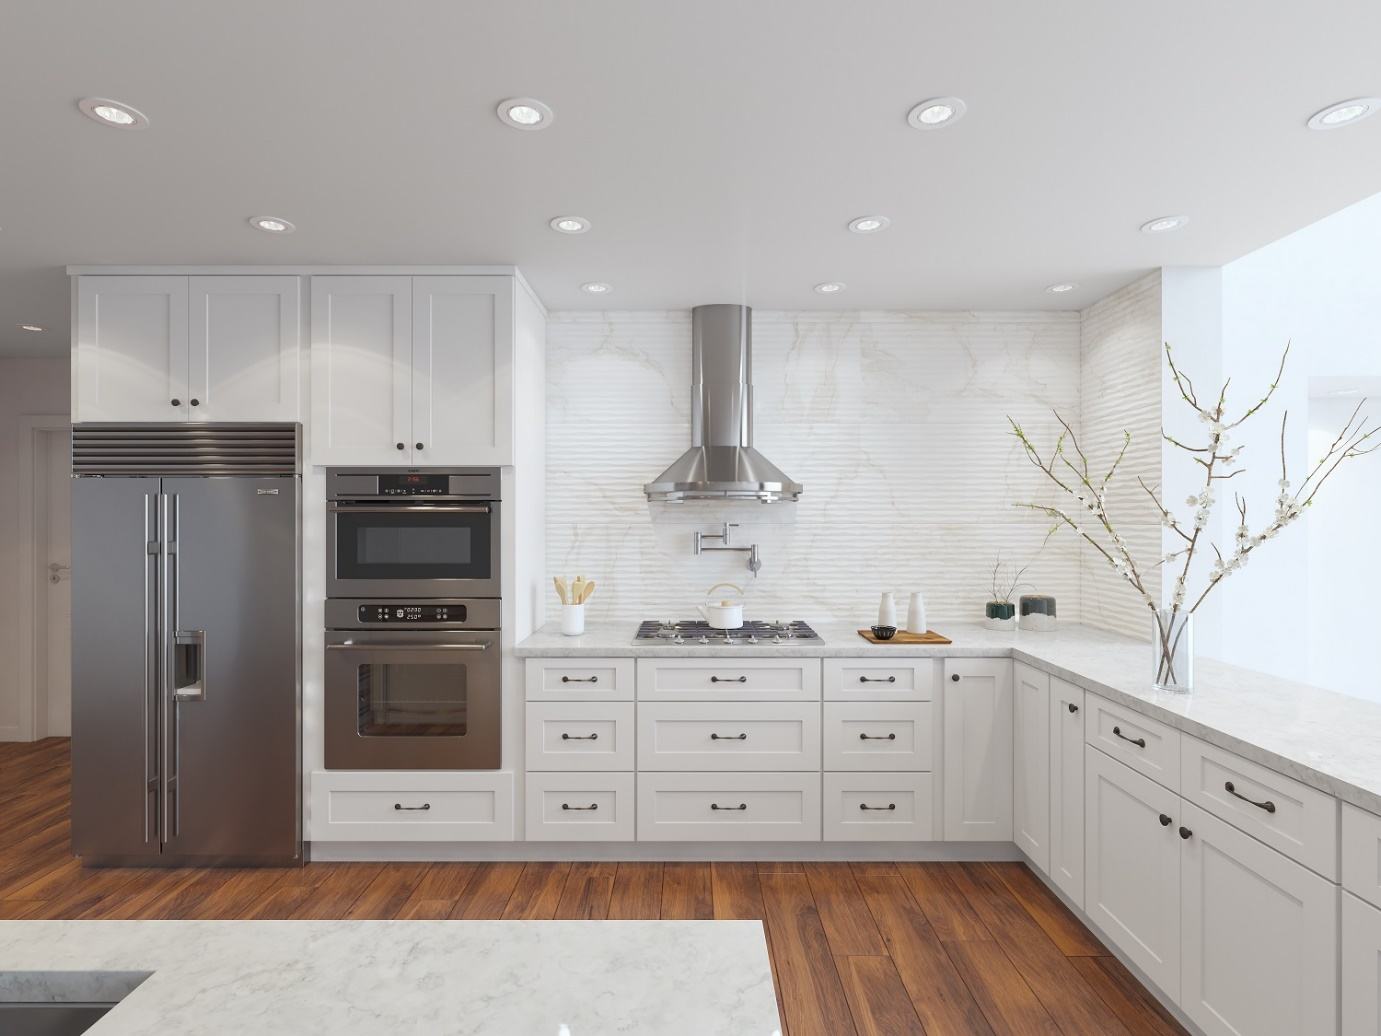 White Shaker Cabinets with Gray Appliances